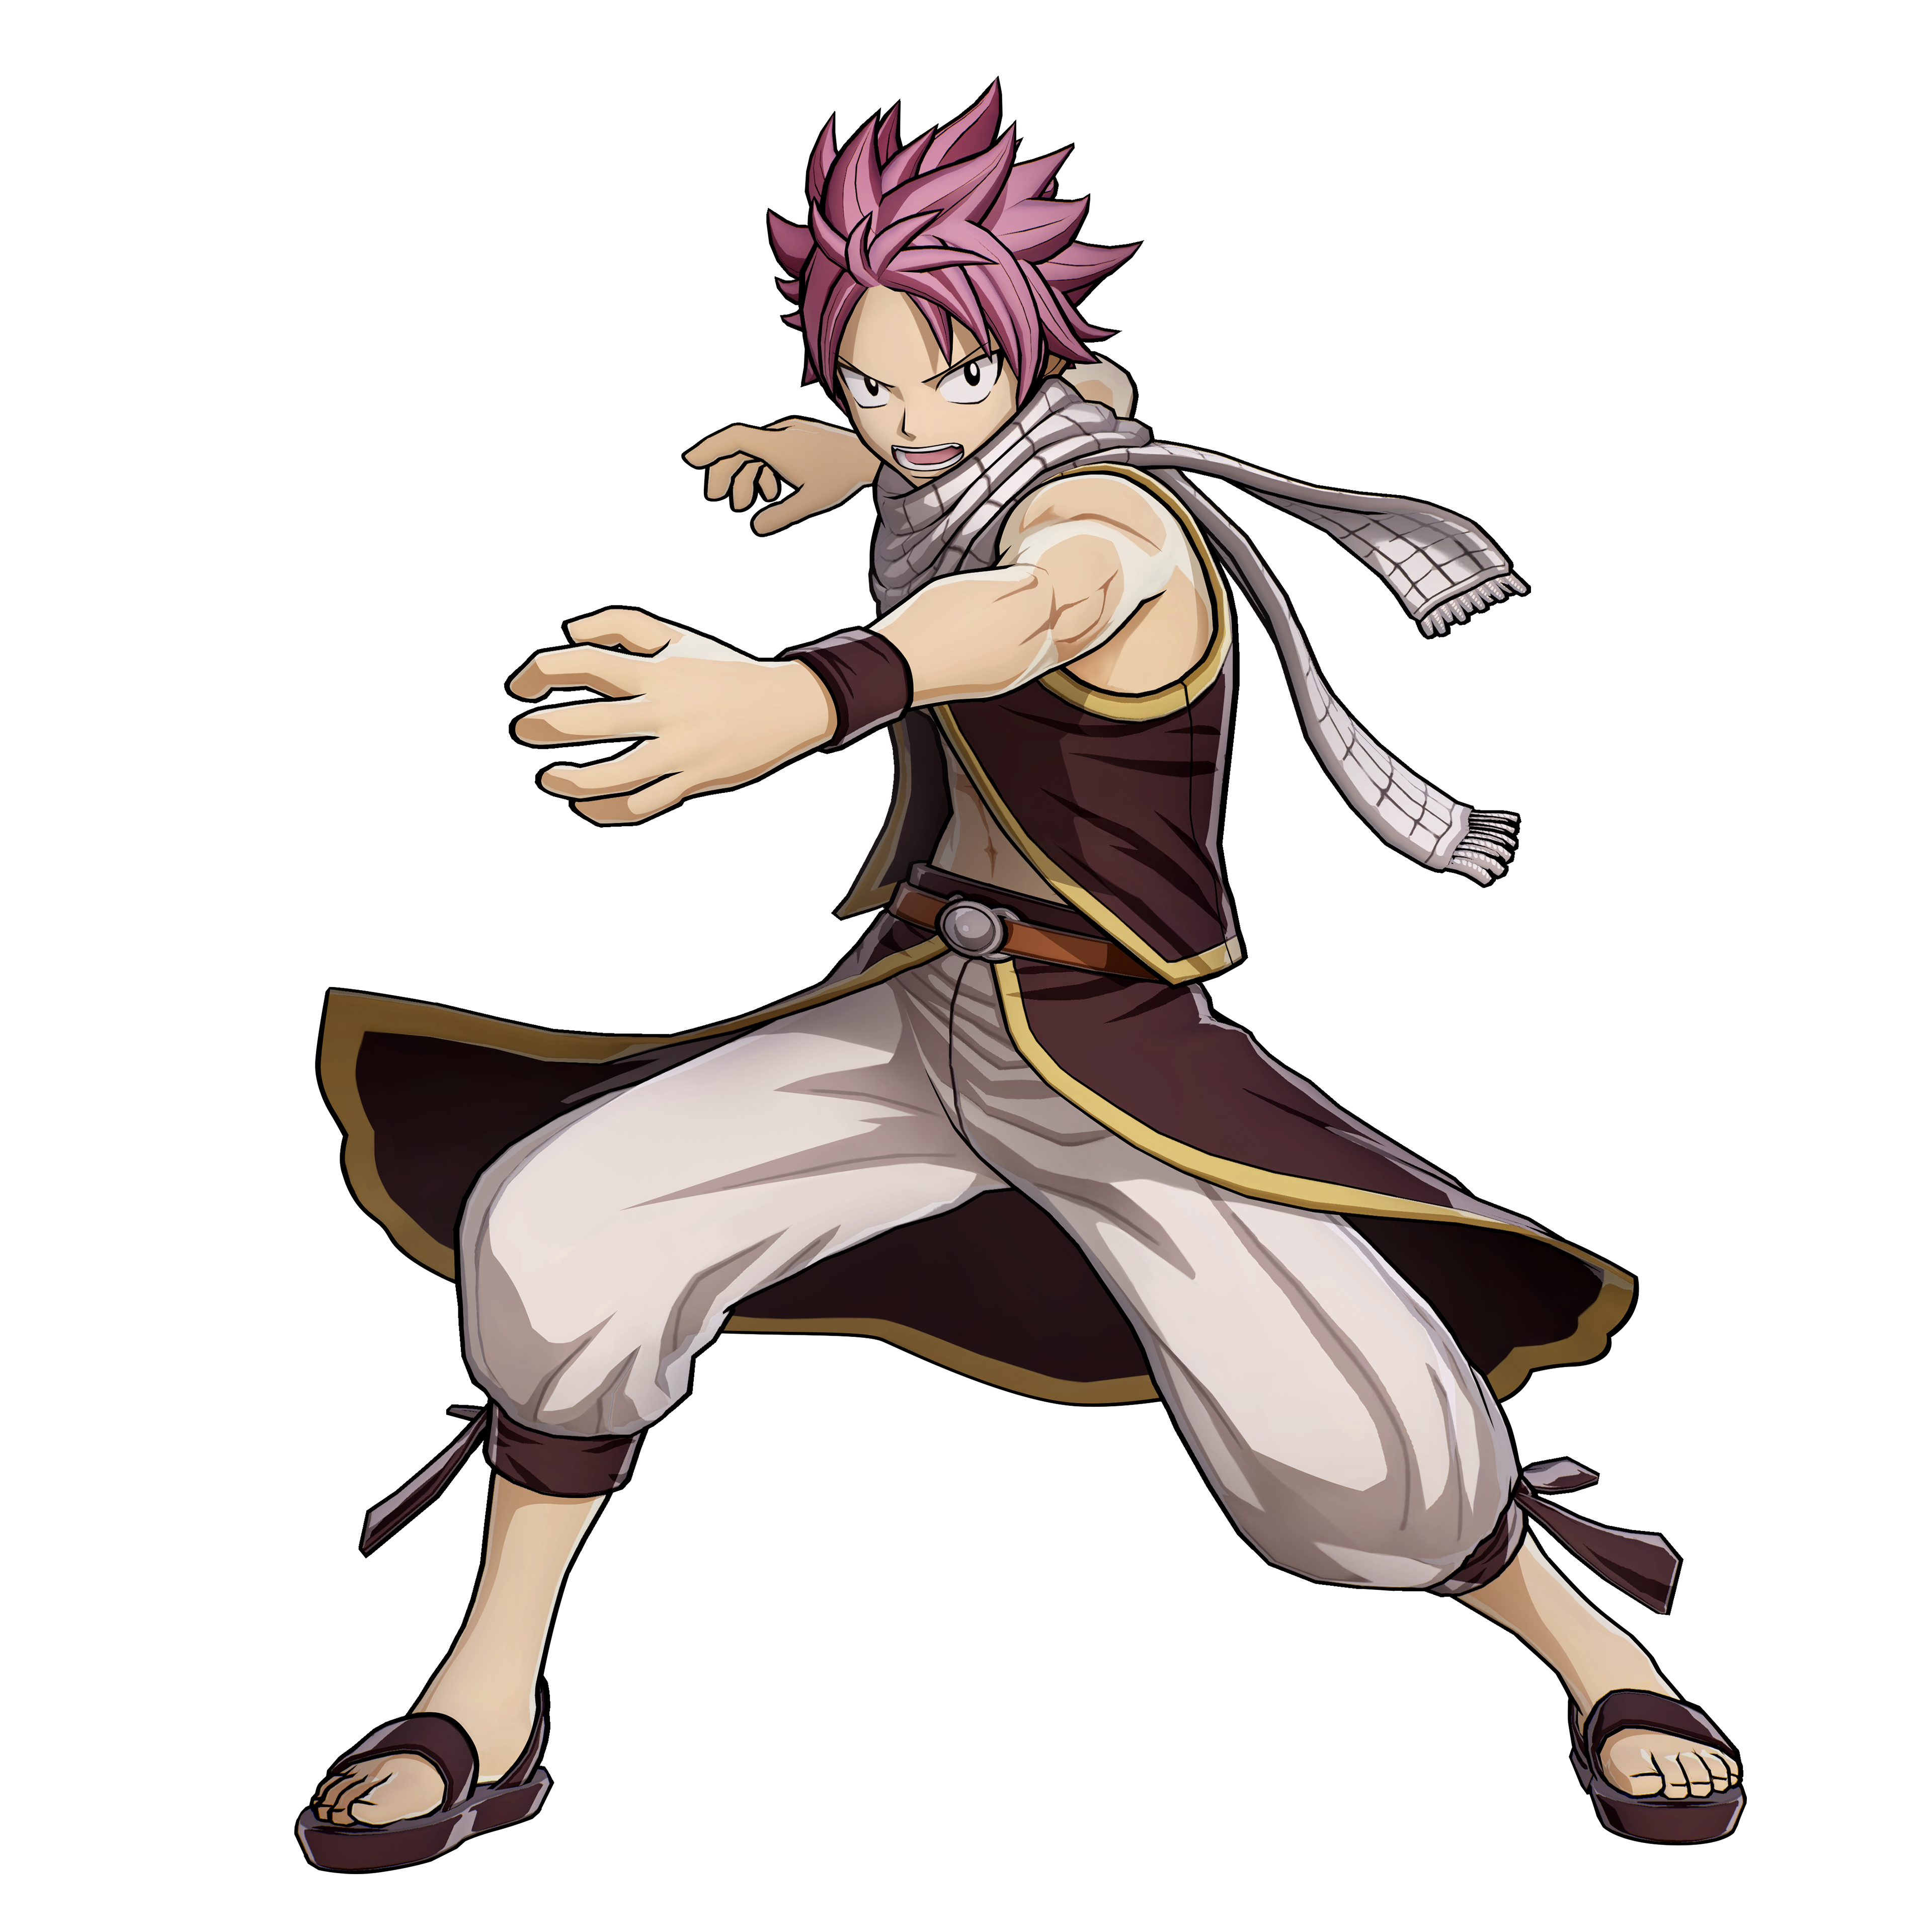 Natsu Dragneel Render (Fairy Tail Game).png